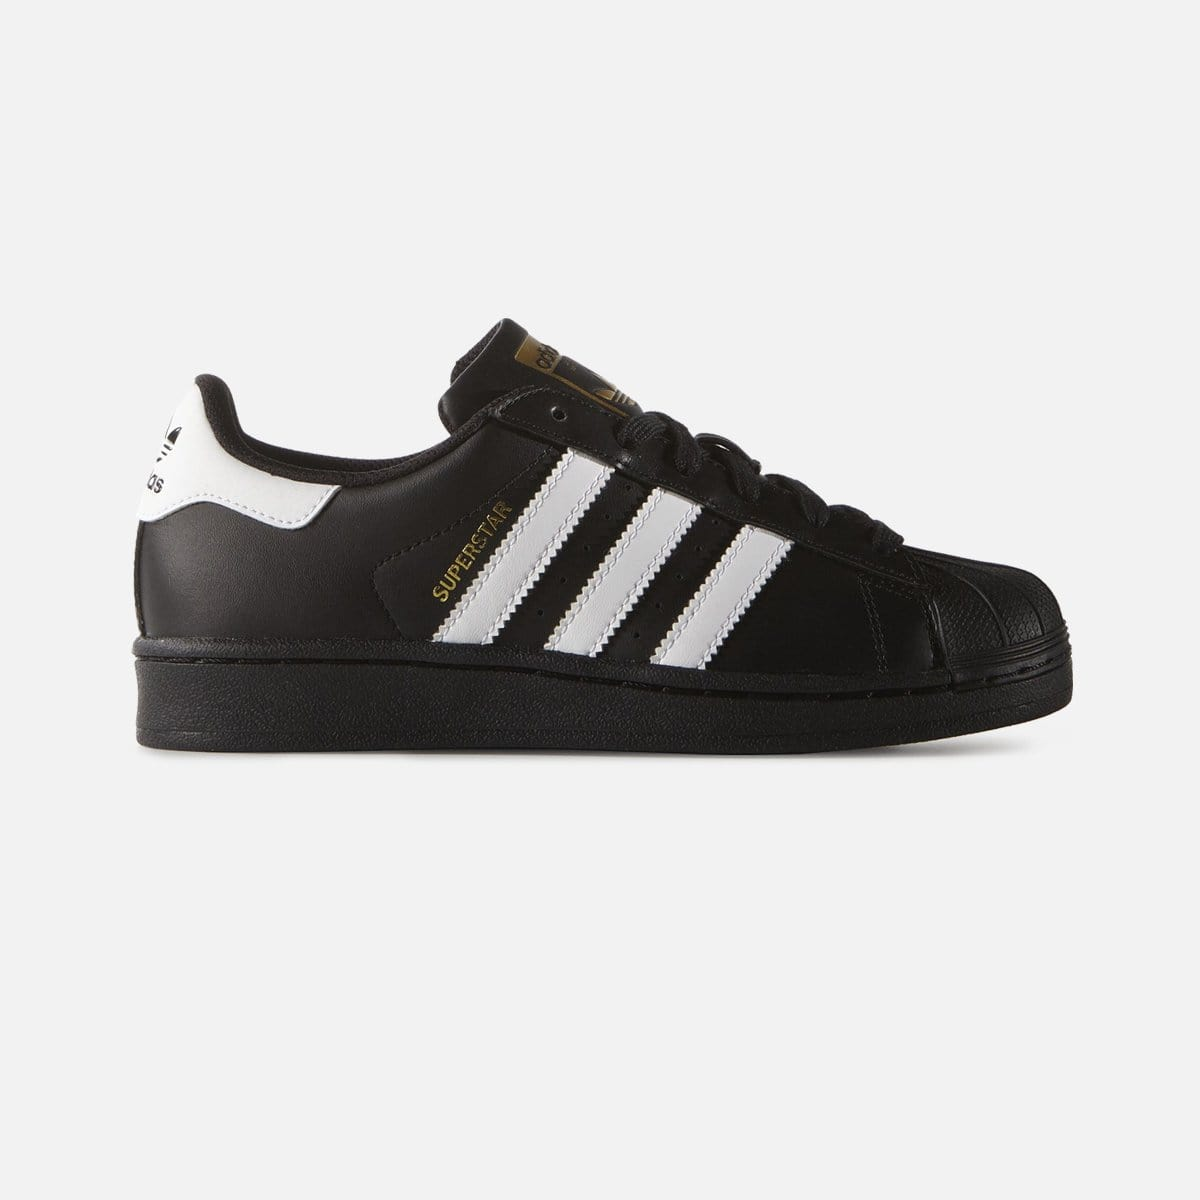 2adidas 41 superstar